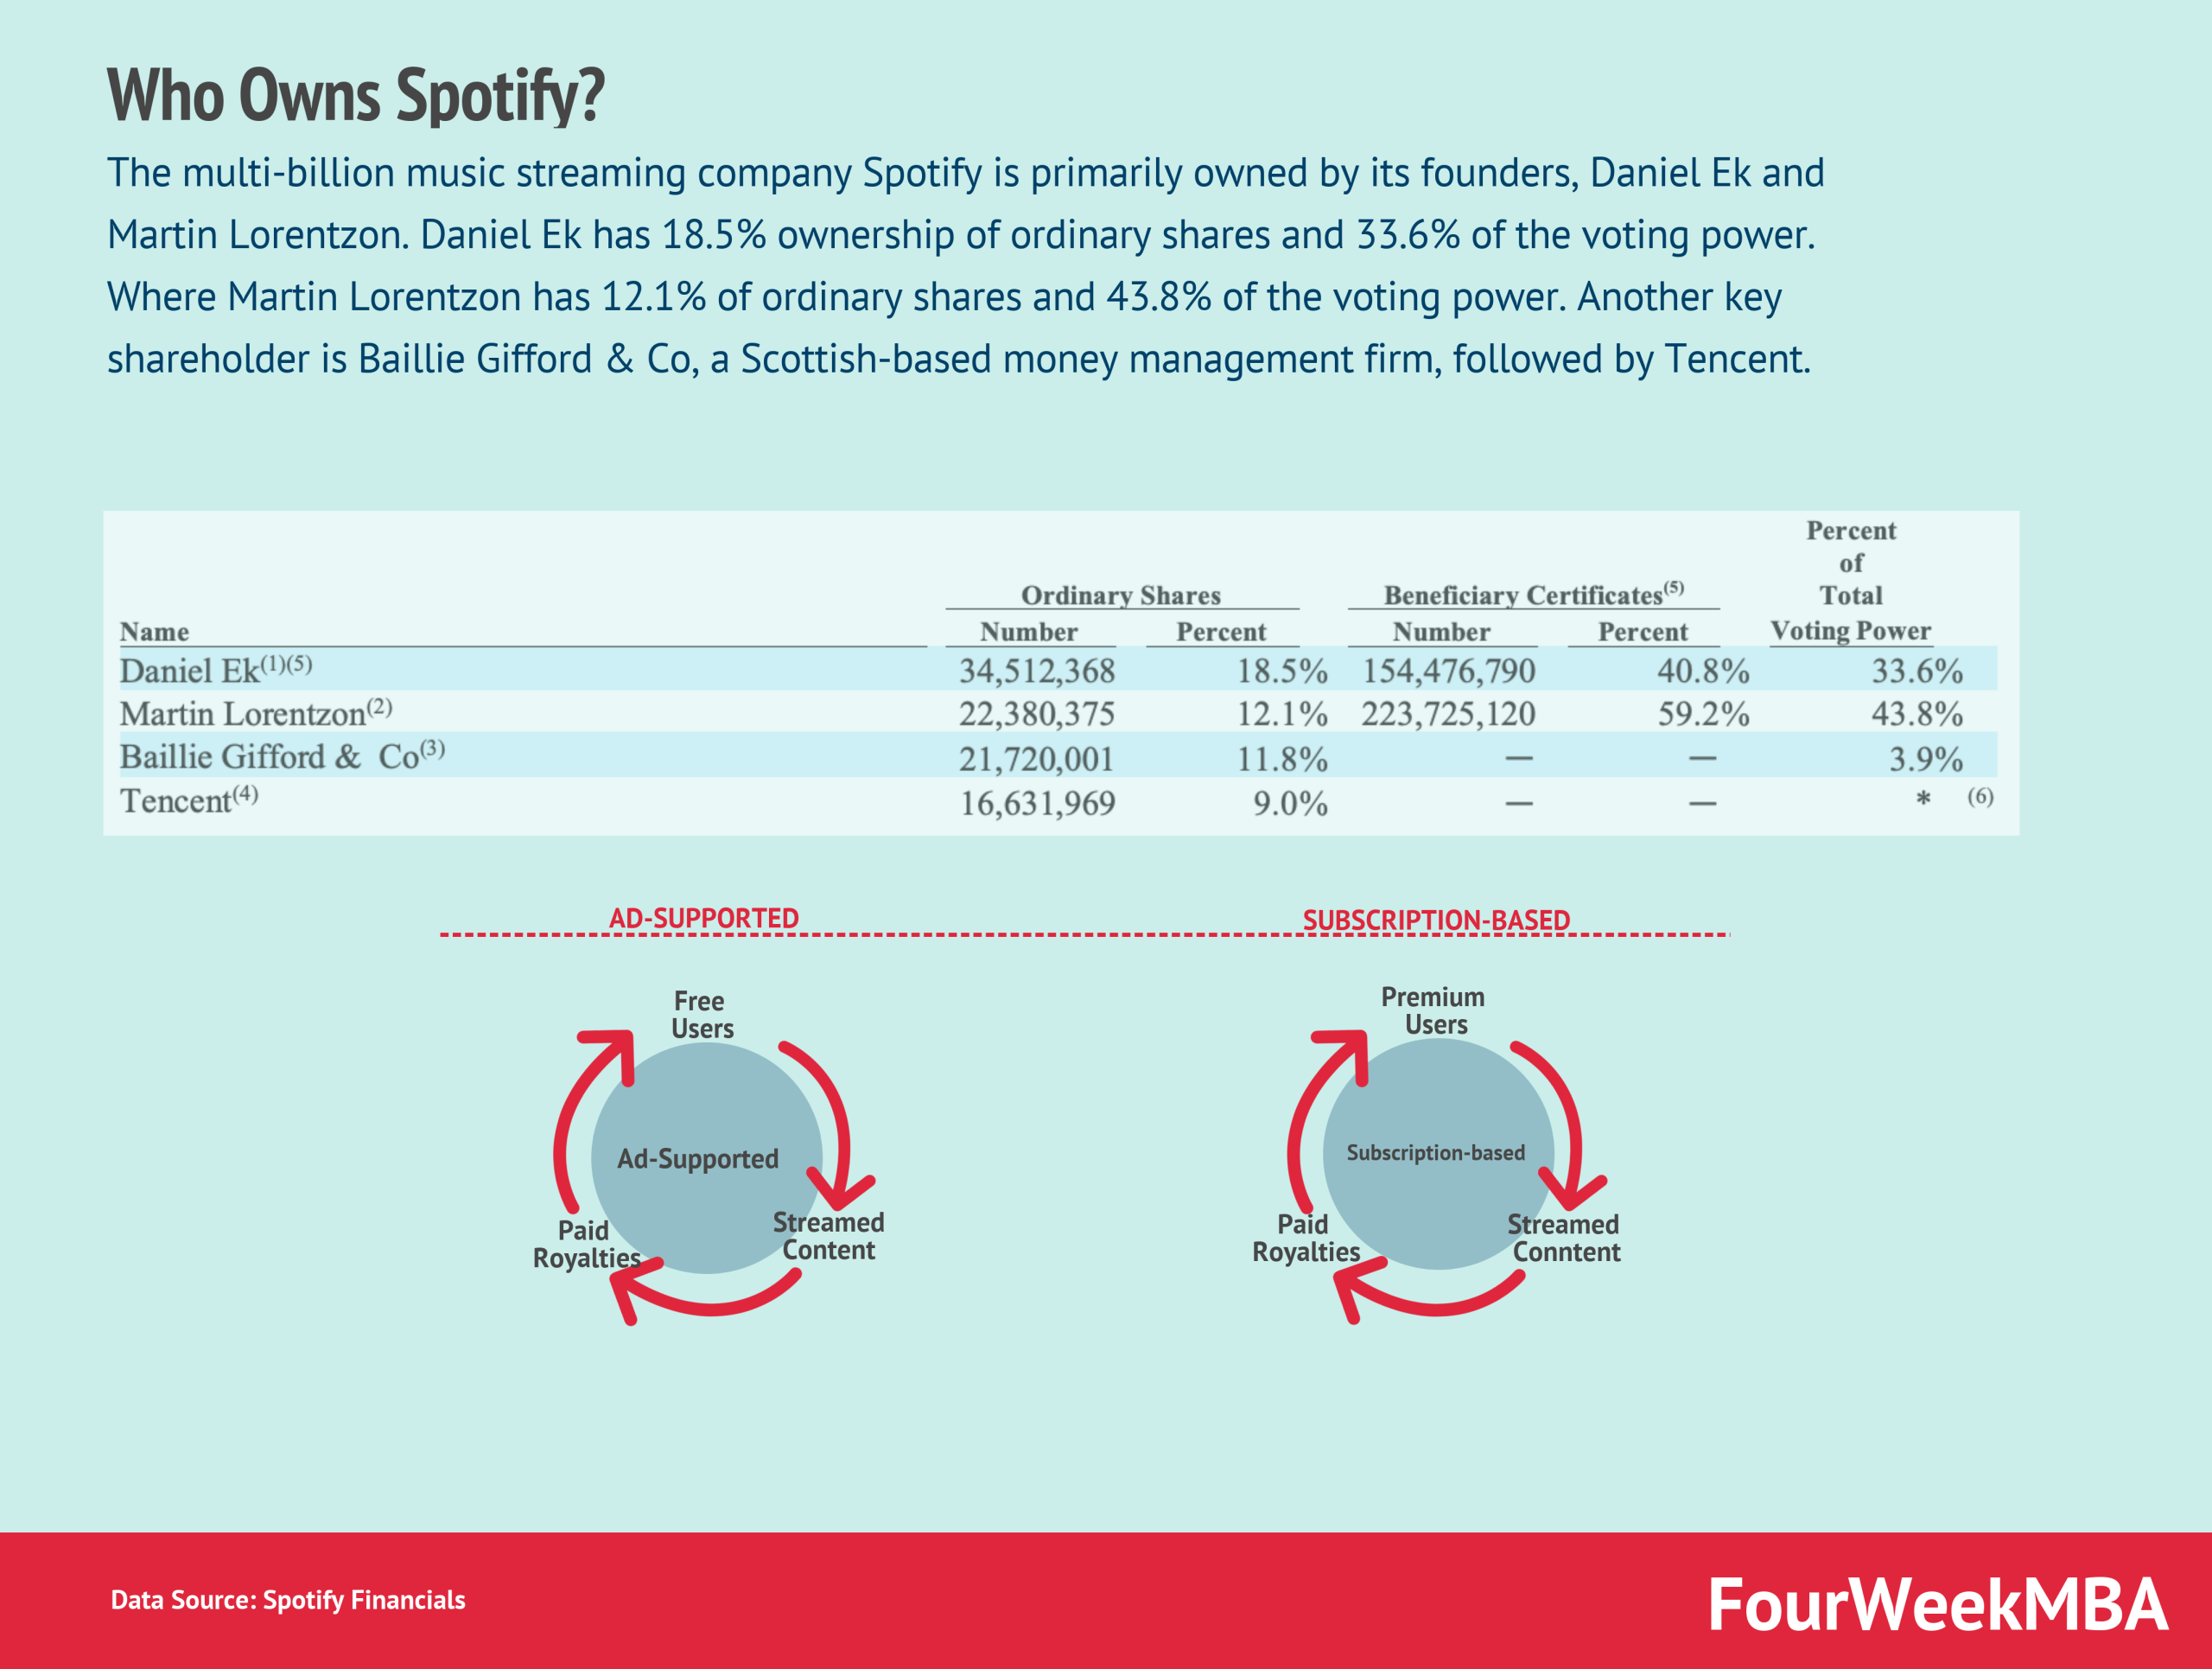 Who Owns Spotify?